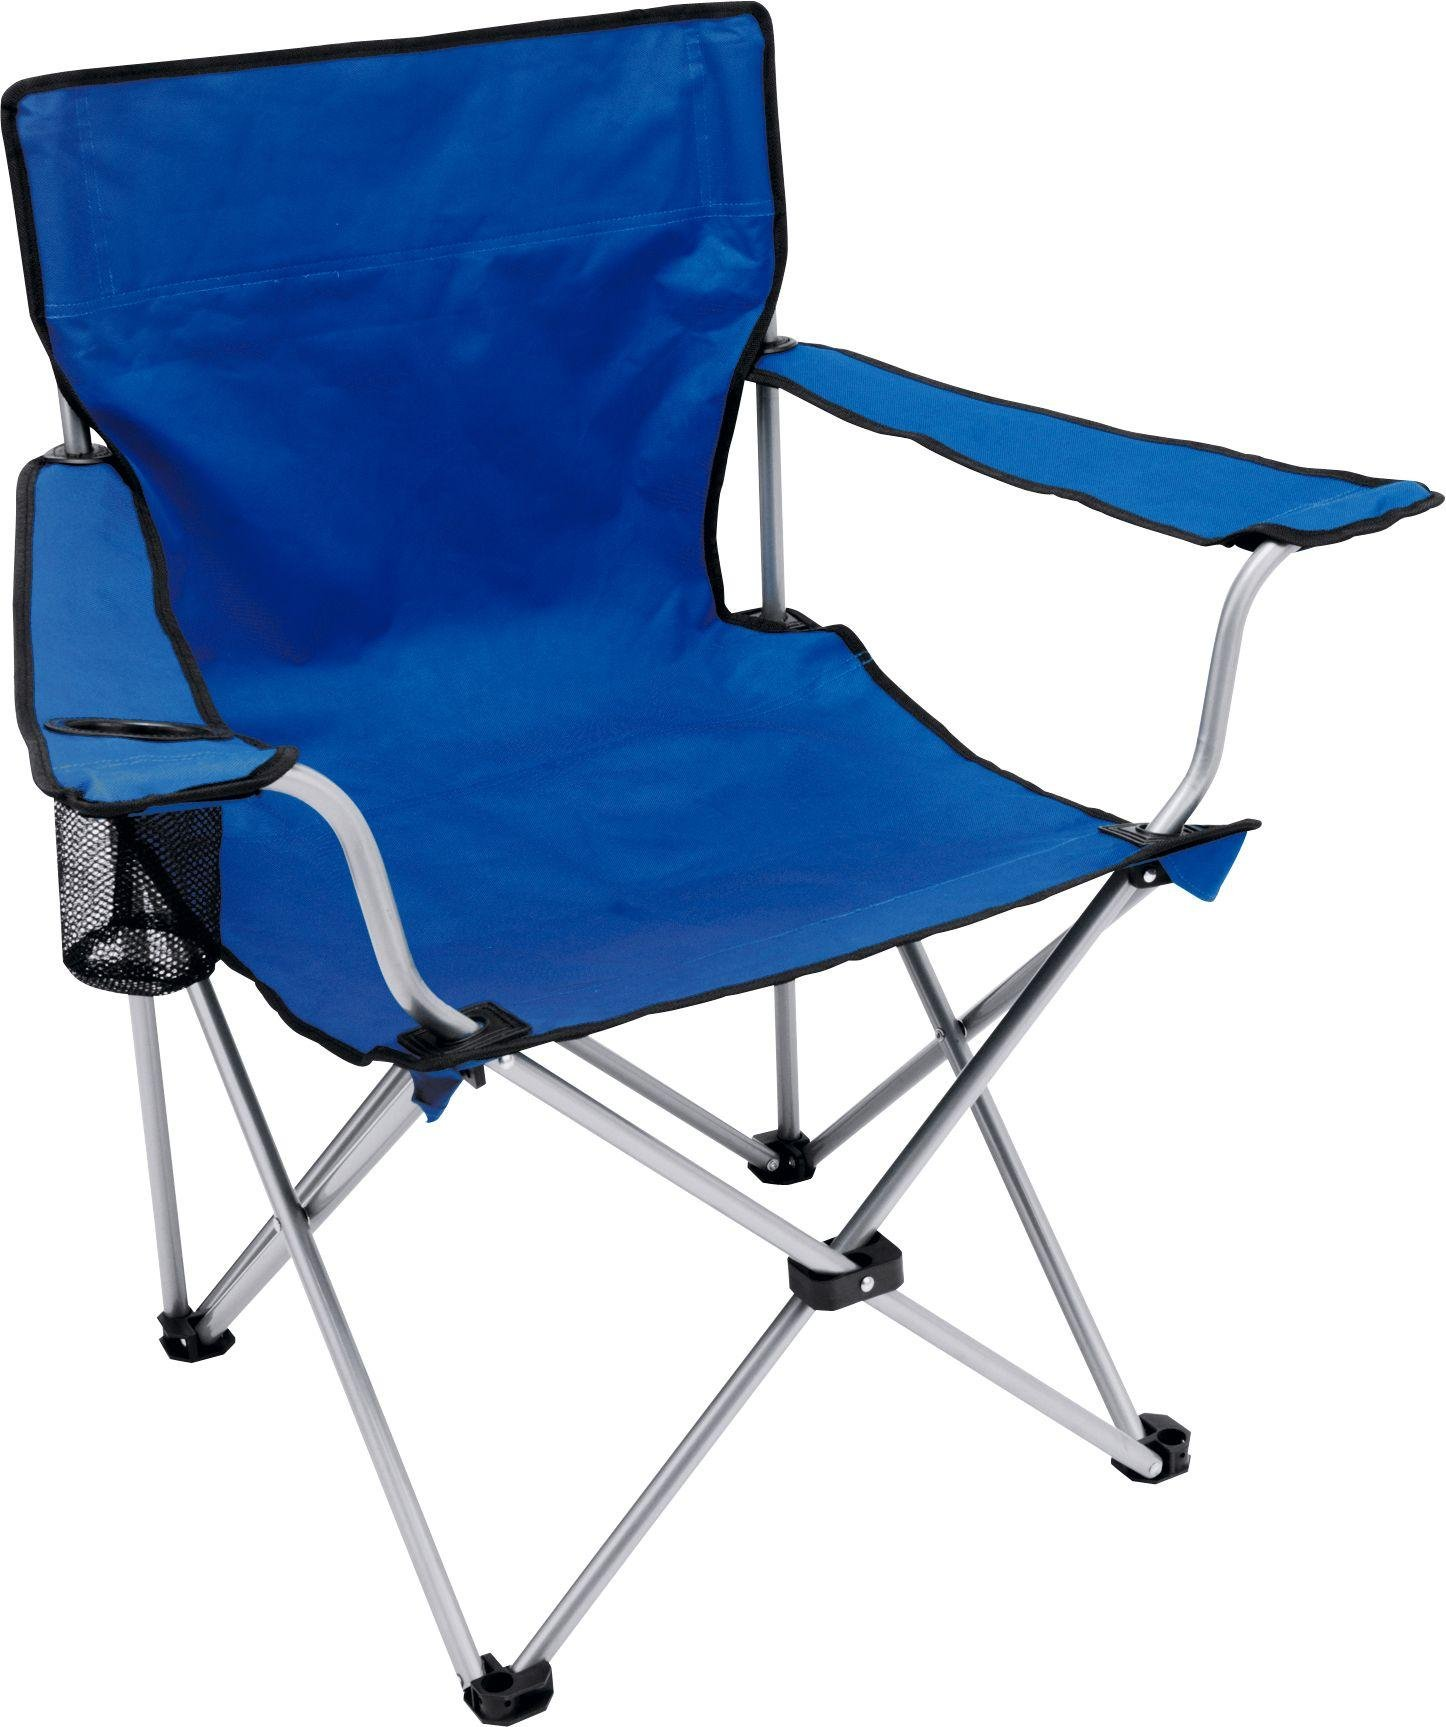 camping chairs buy steel folding camping chair at argos.co.uk - your online shop for camping  chairs ASQEMXA